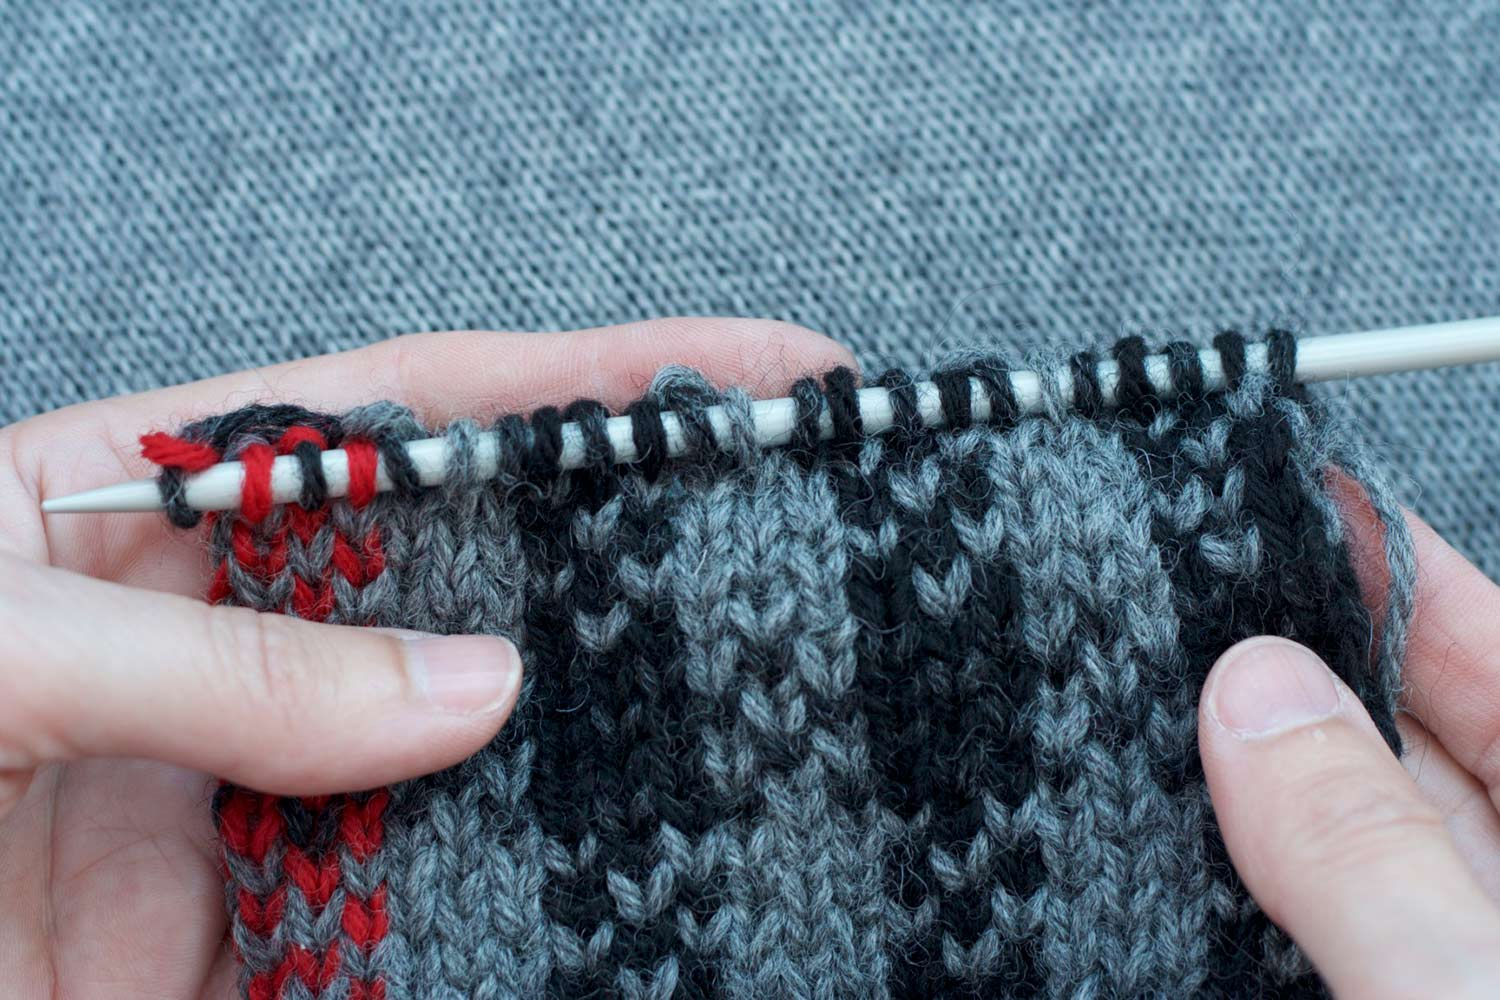 Hands hold knitting with right side facing showing a completed row of slipped stitches alternating with knit stitches.